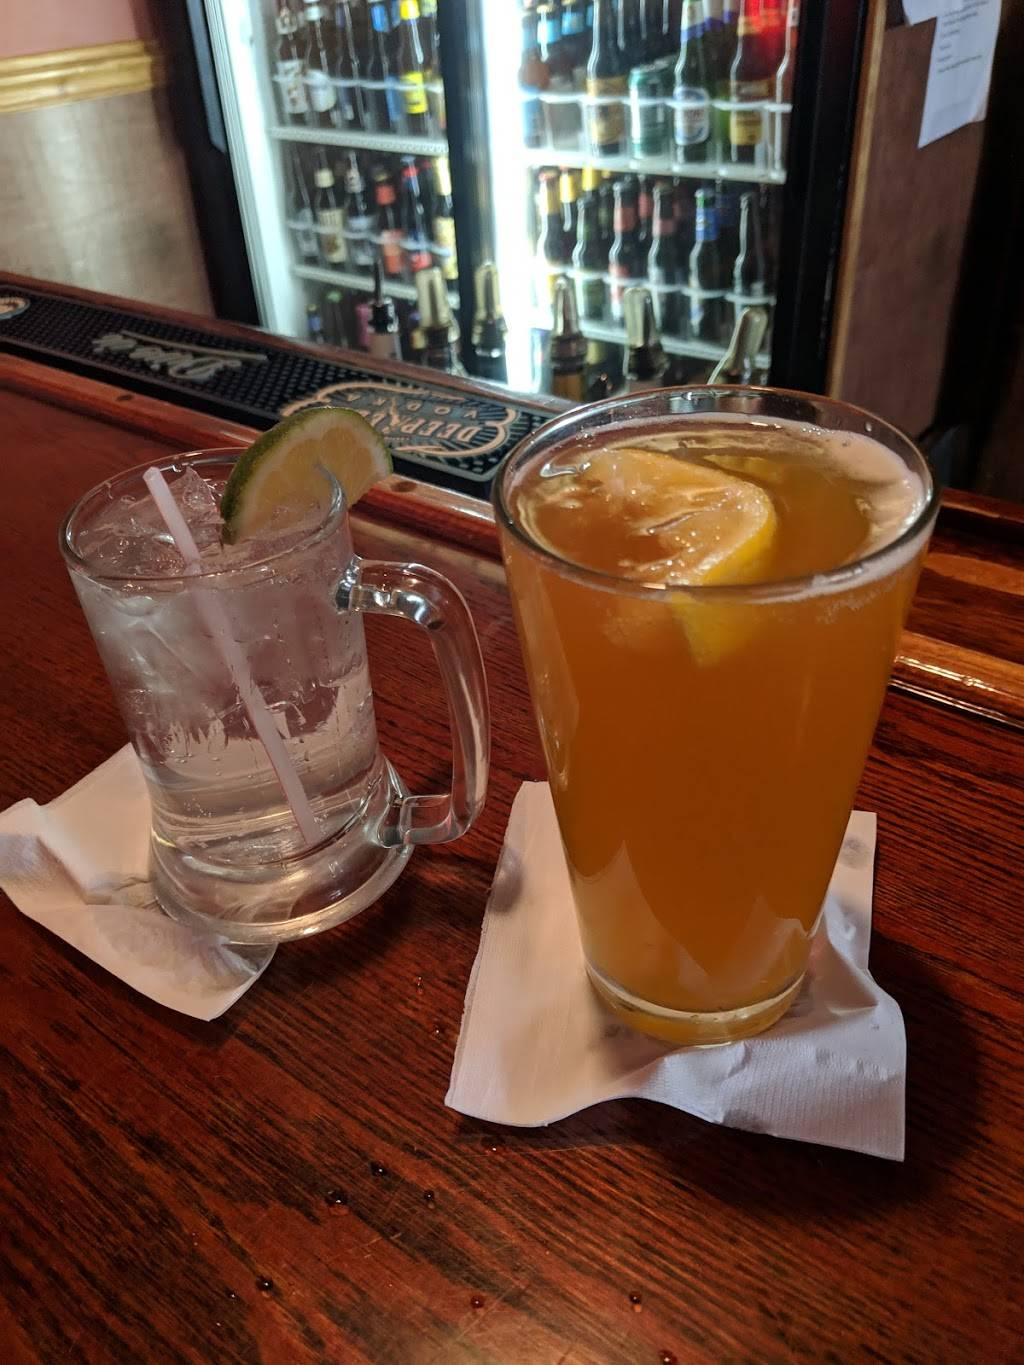 West End Ale Haus   restaurant   117 W Main St, Bloomsburg, PA 17815, USA   5707843500 OR +1 570-784-3500